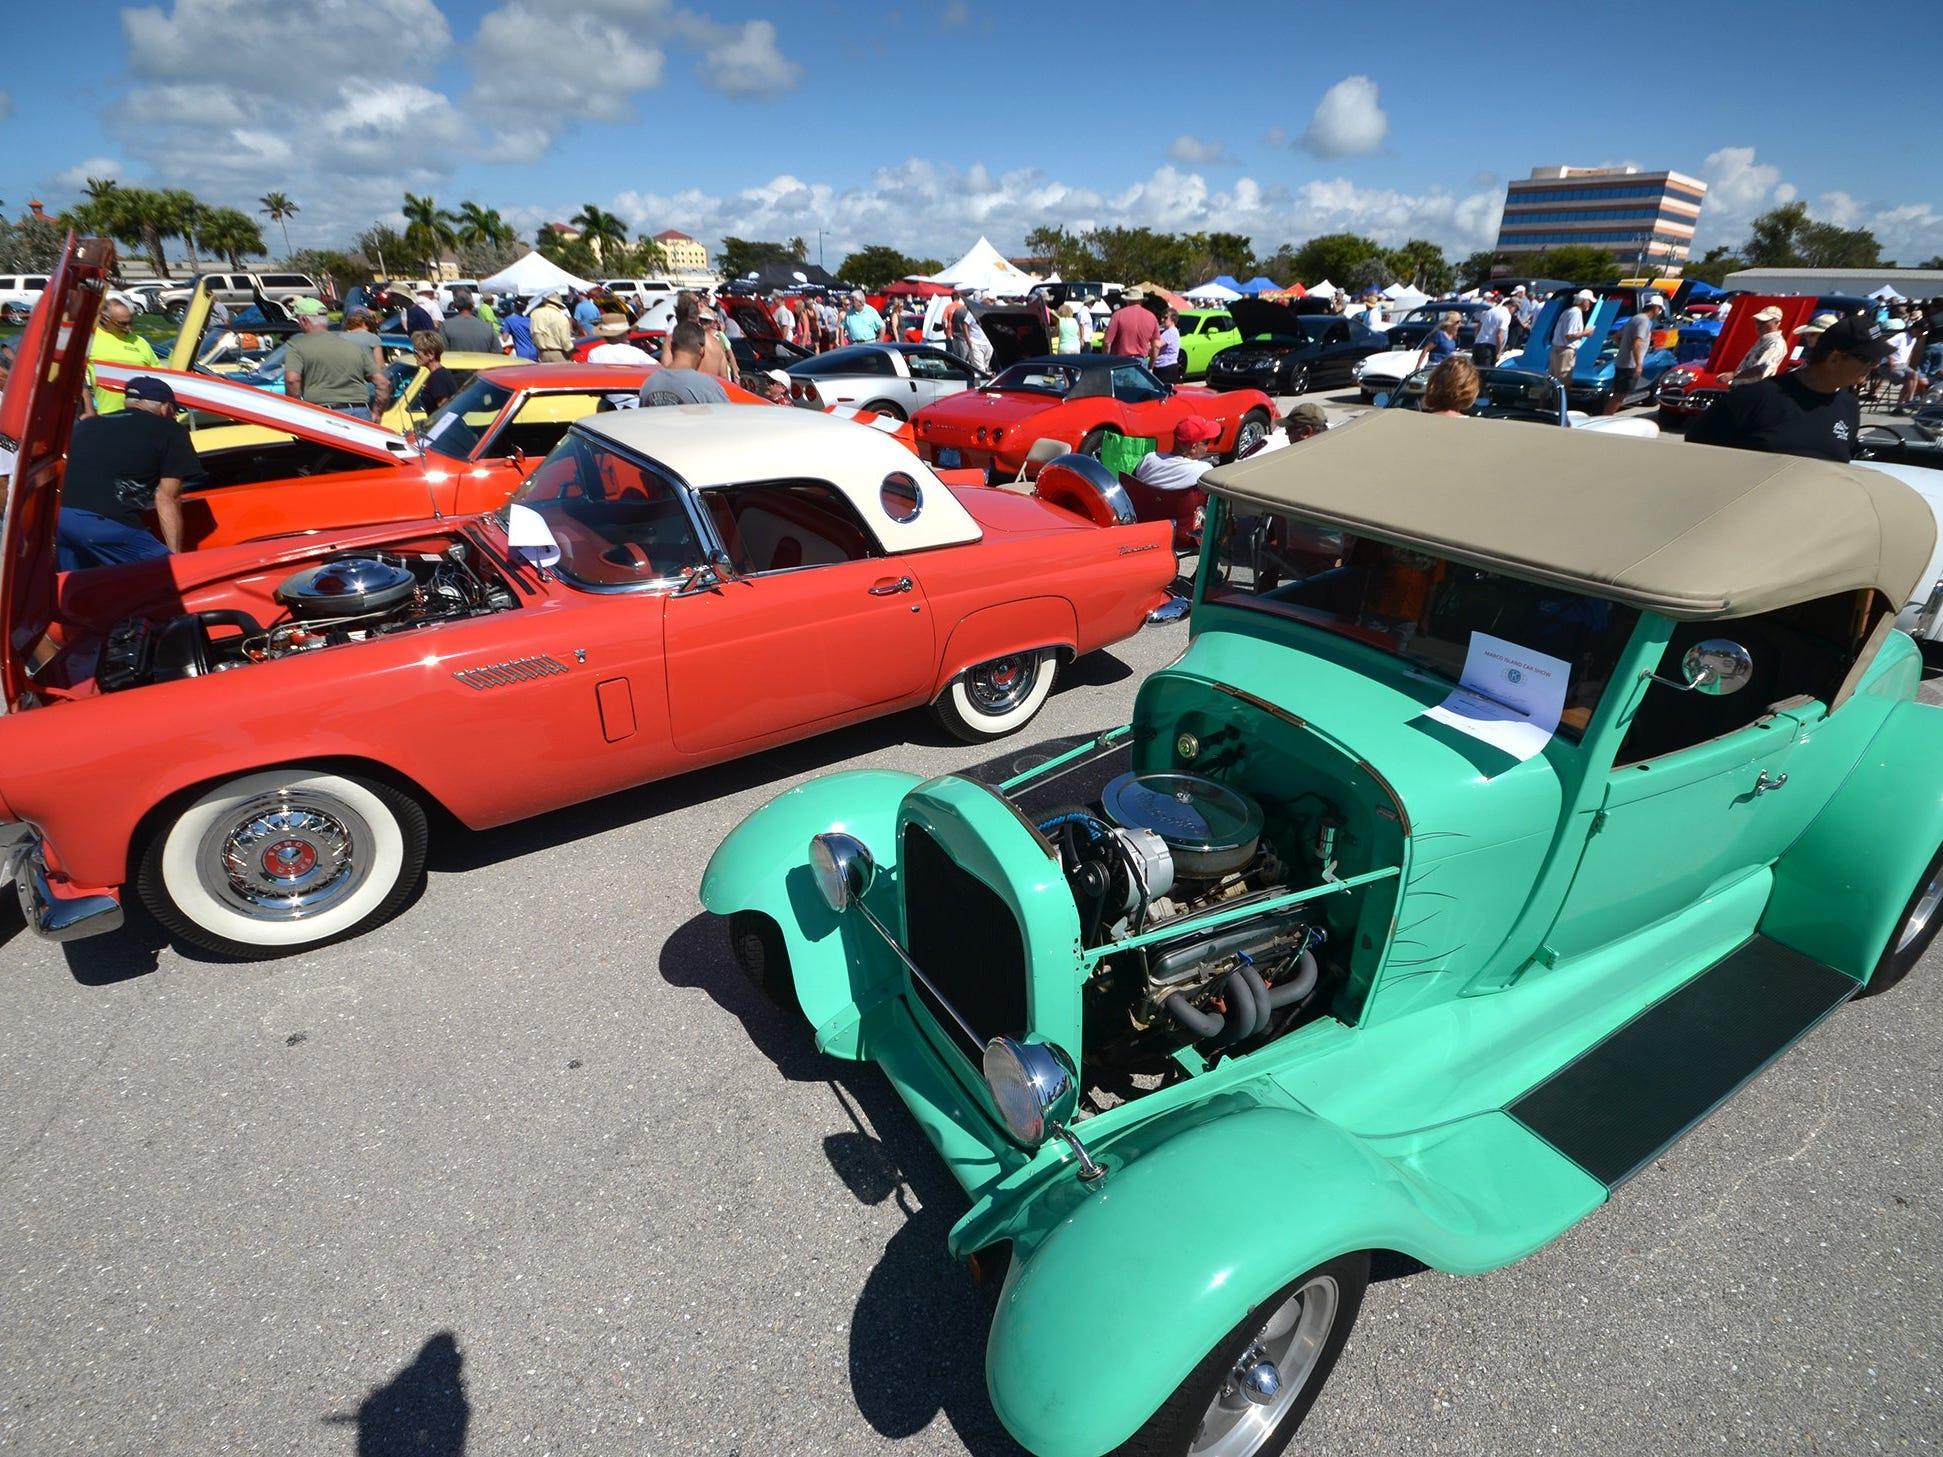 From a '56 T-Bird to a '29 Ford street rod, the show had something for everyone. The annual Kiwanis car show brought 170 collectible cars and thousands of car enthusiasts to Veterans Community Park on Marco Island Sunday.